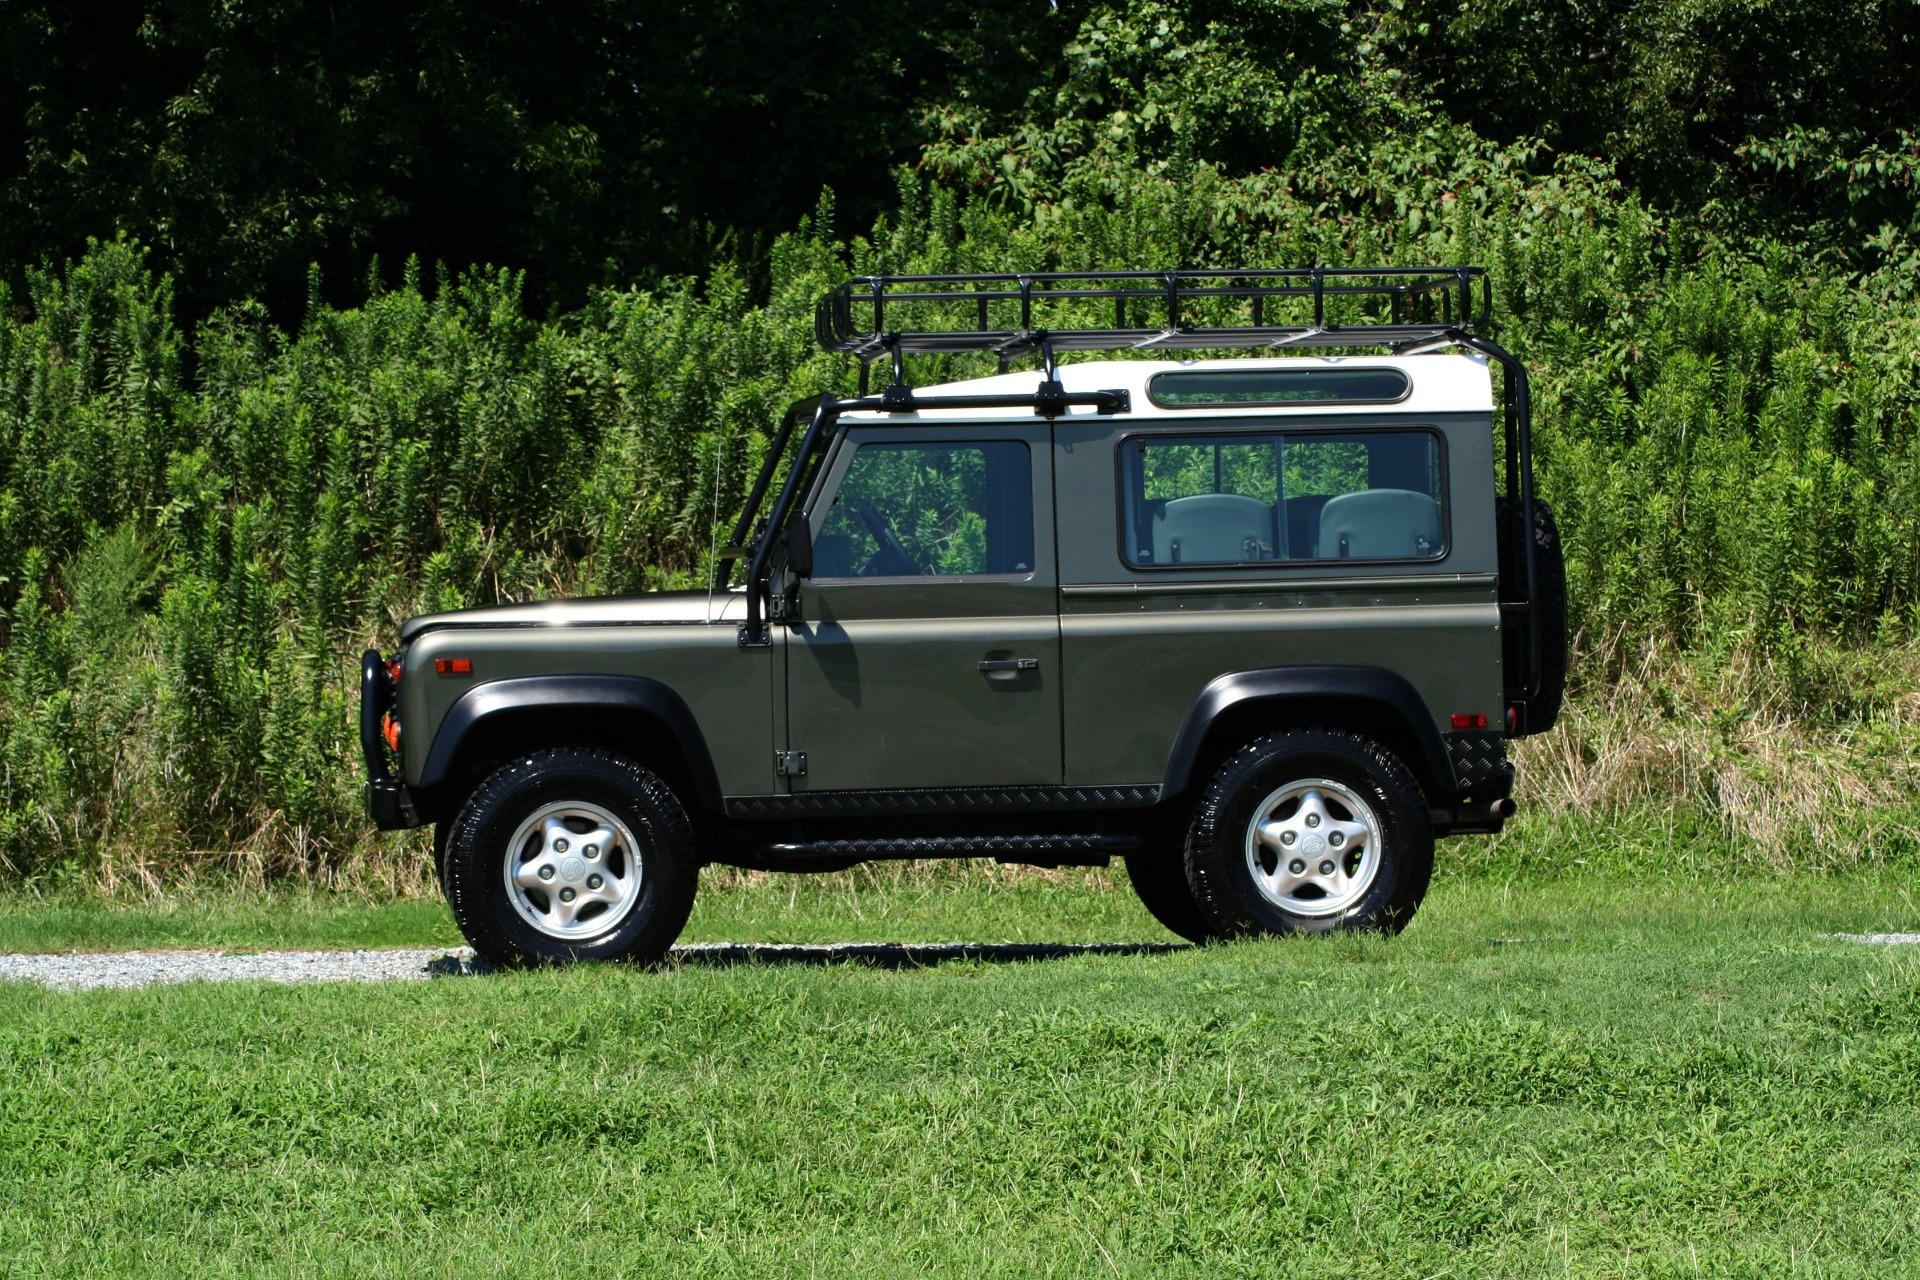 Used 1997 Land Rover DEFENDER 90 LIMITED EDITION 4X4 HARD-TOP for sale $139,999 at Formula Imports in Charlotte NC 28227 11